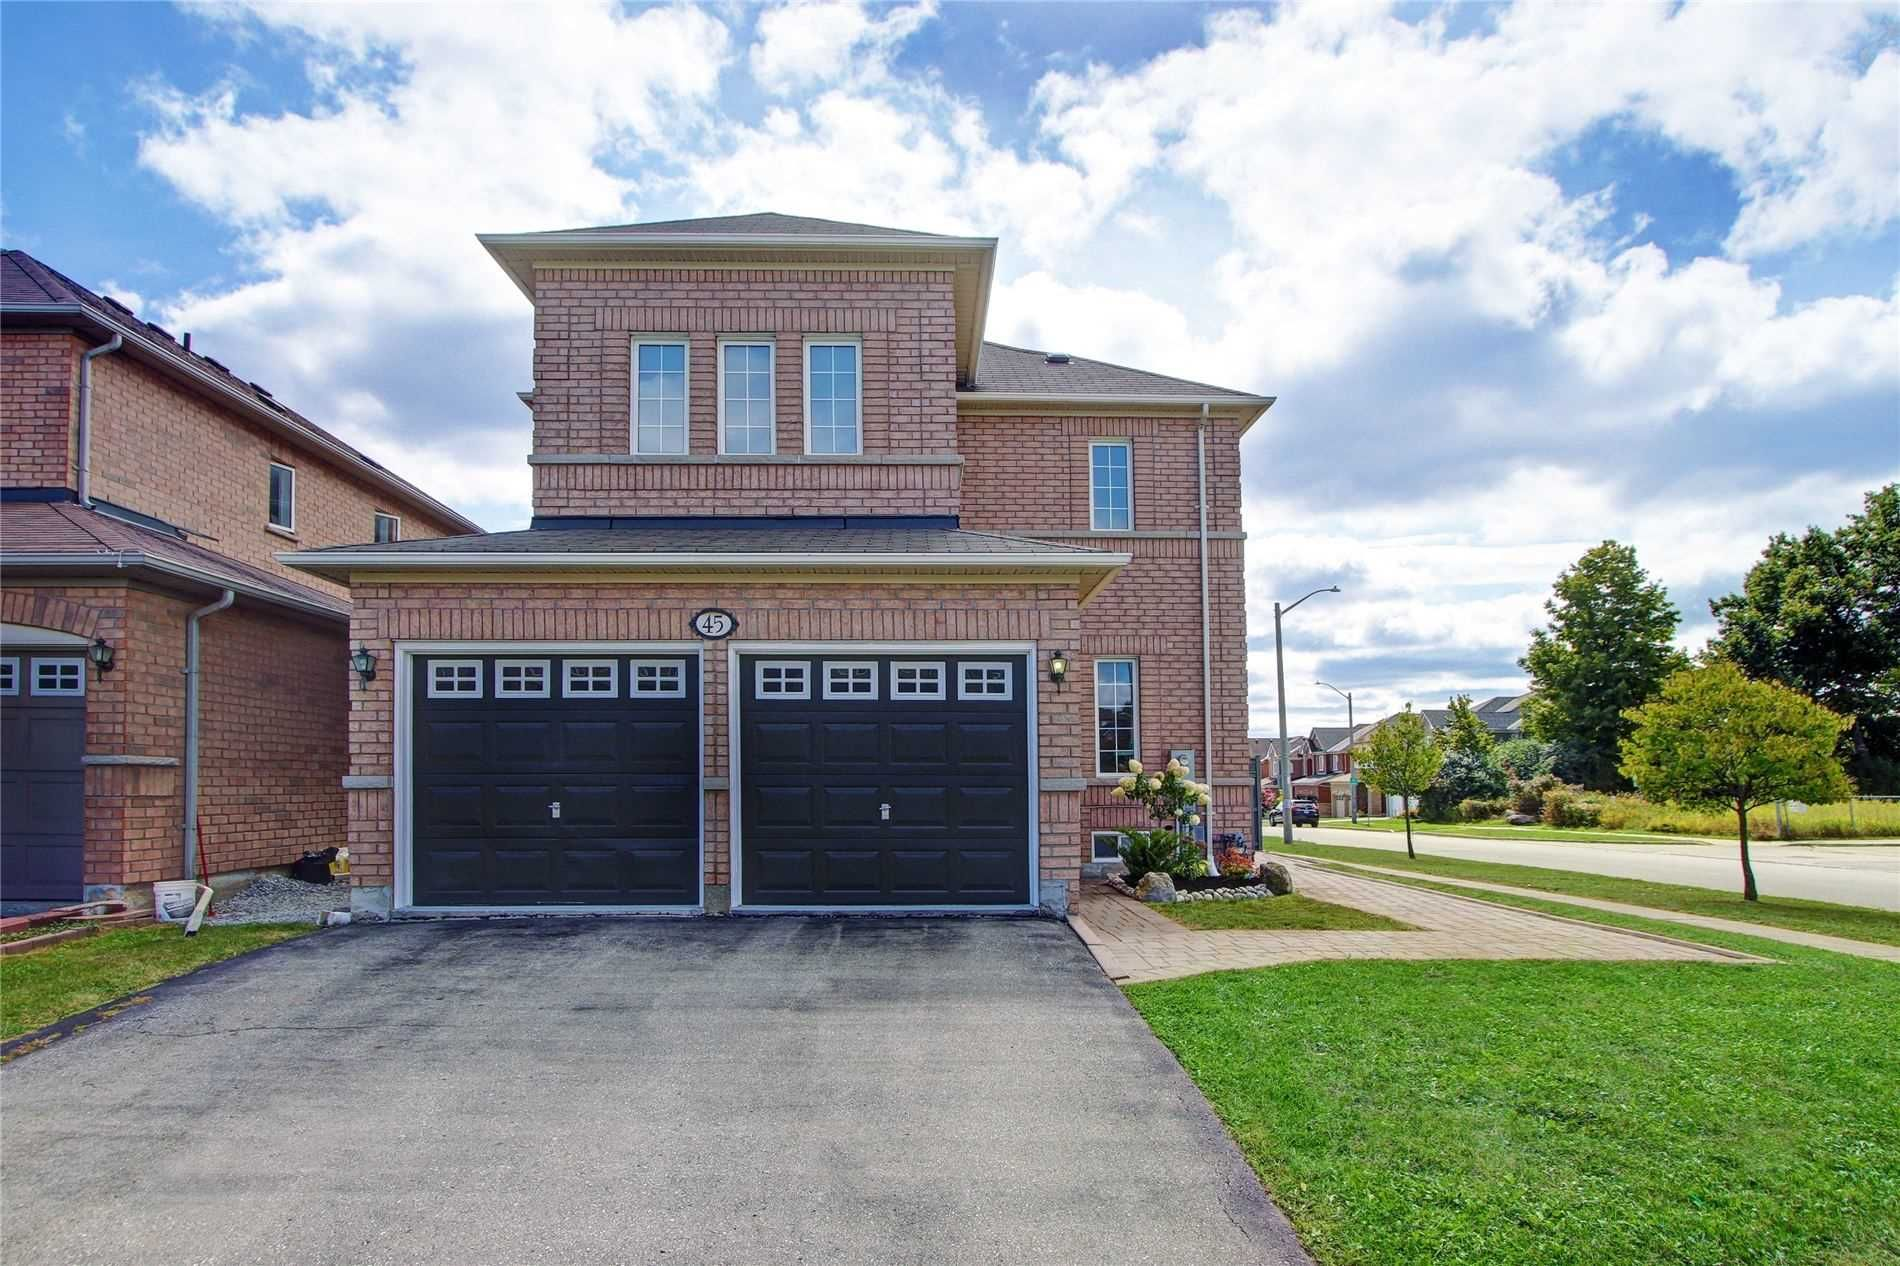 Main Photo: 45 Brackenwood Ave in Richmond Hill: Freehold for sale : MLS®# N4574998